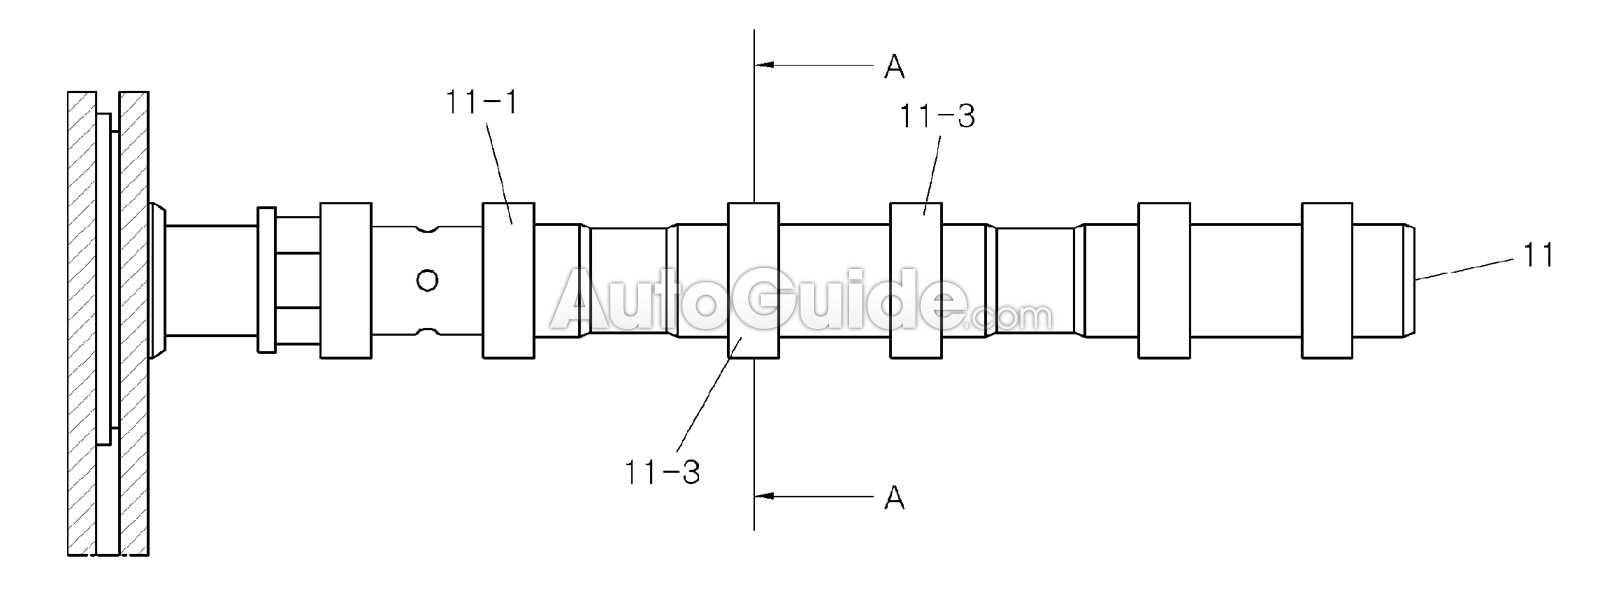 Hyundai Patents An Engine With Different Size Cylinders Autoguide Diagram Four Cylinder Patent 03